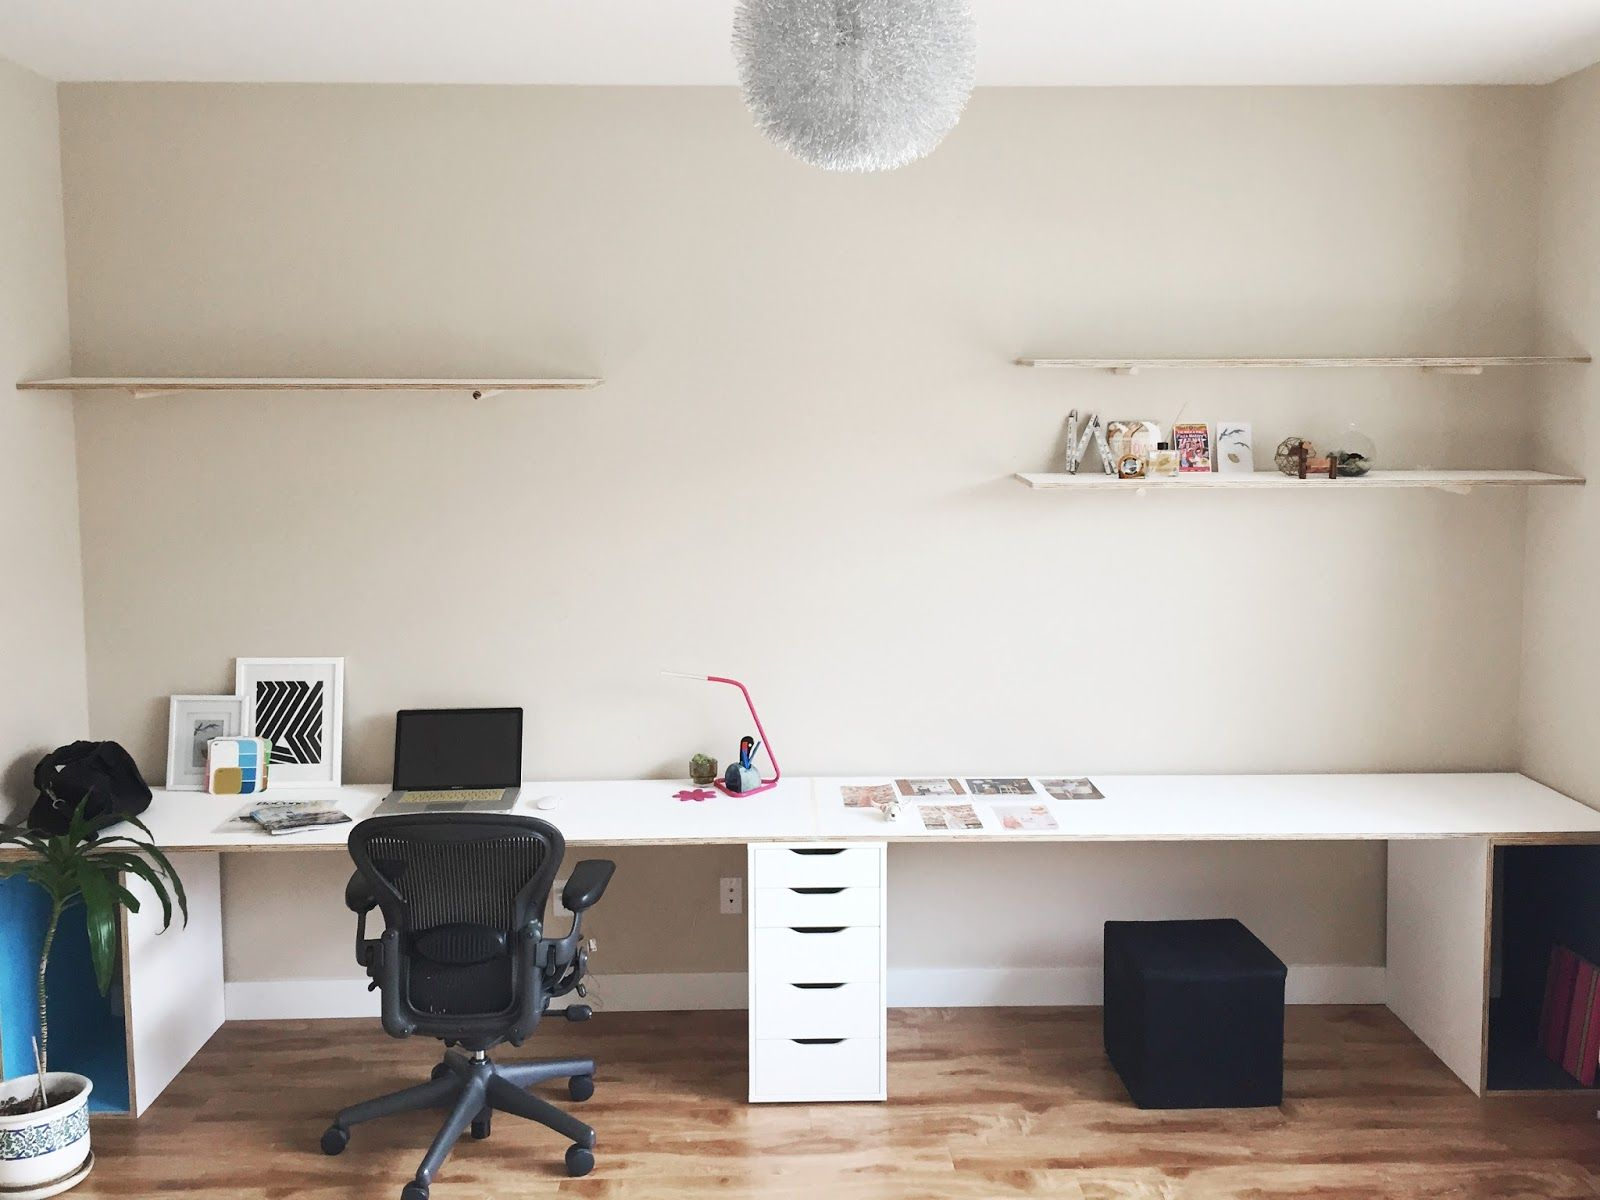 Solution To A Seemingly Never Ending 14 Foot Wall Space A Never Ending Wall Length 14 Foot Plywood Desk Initi Plywood Desk Home Office Storage Bookshelf Desk